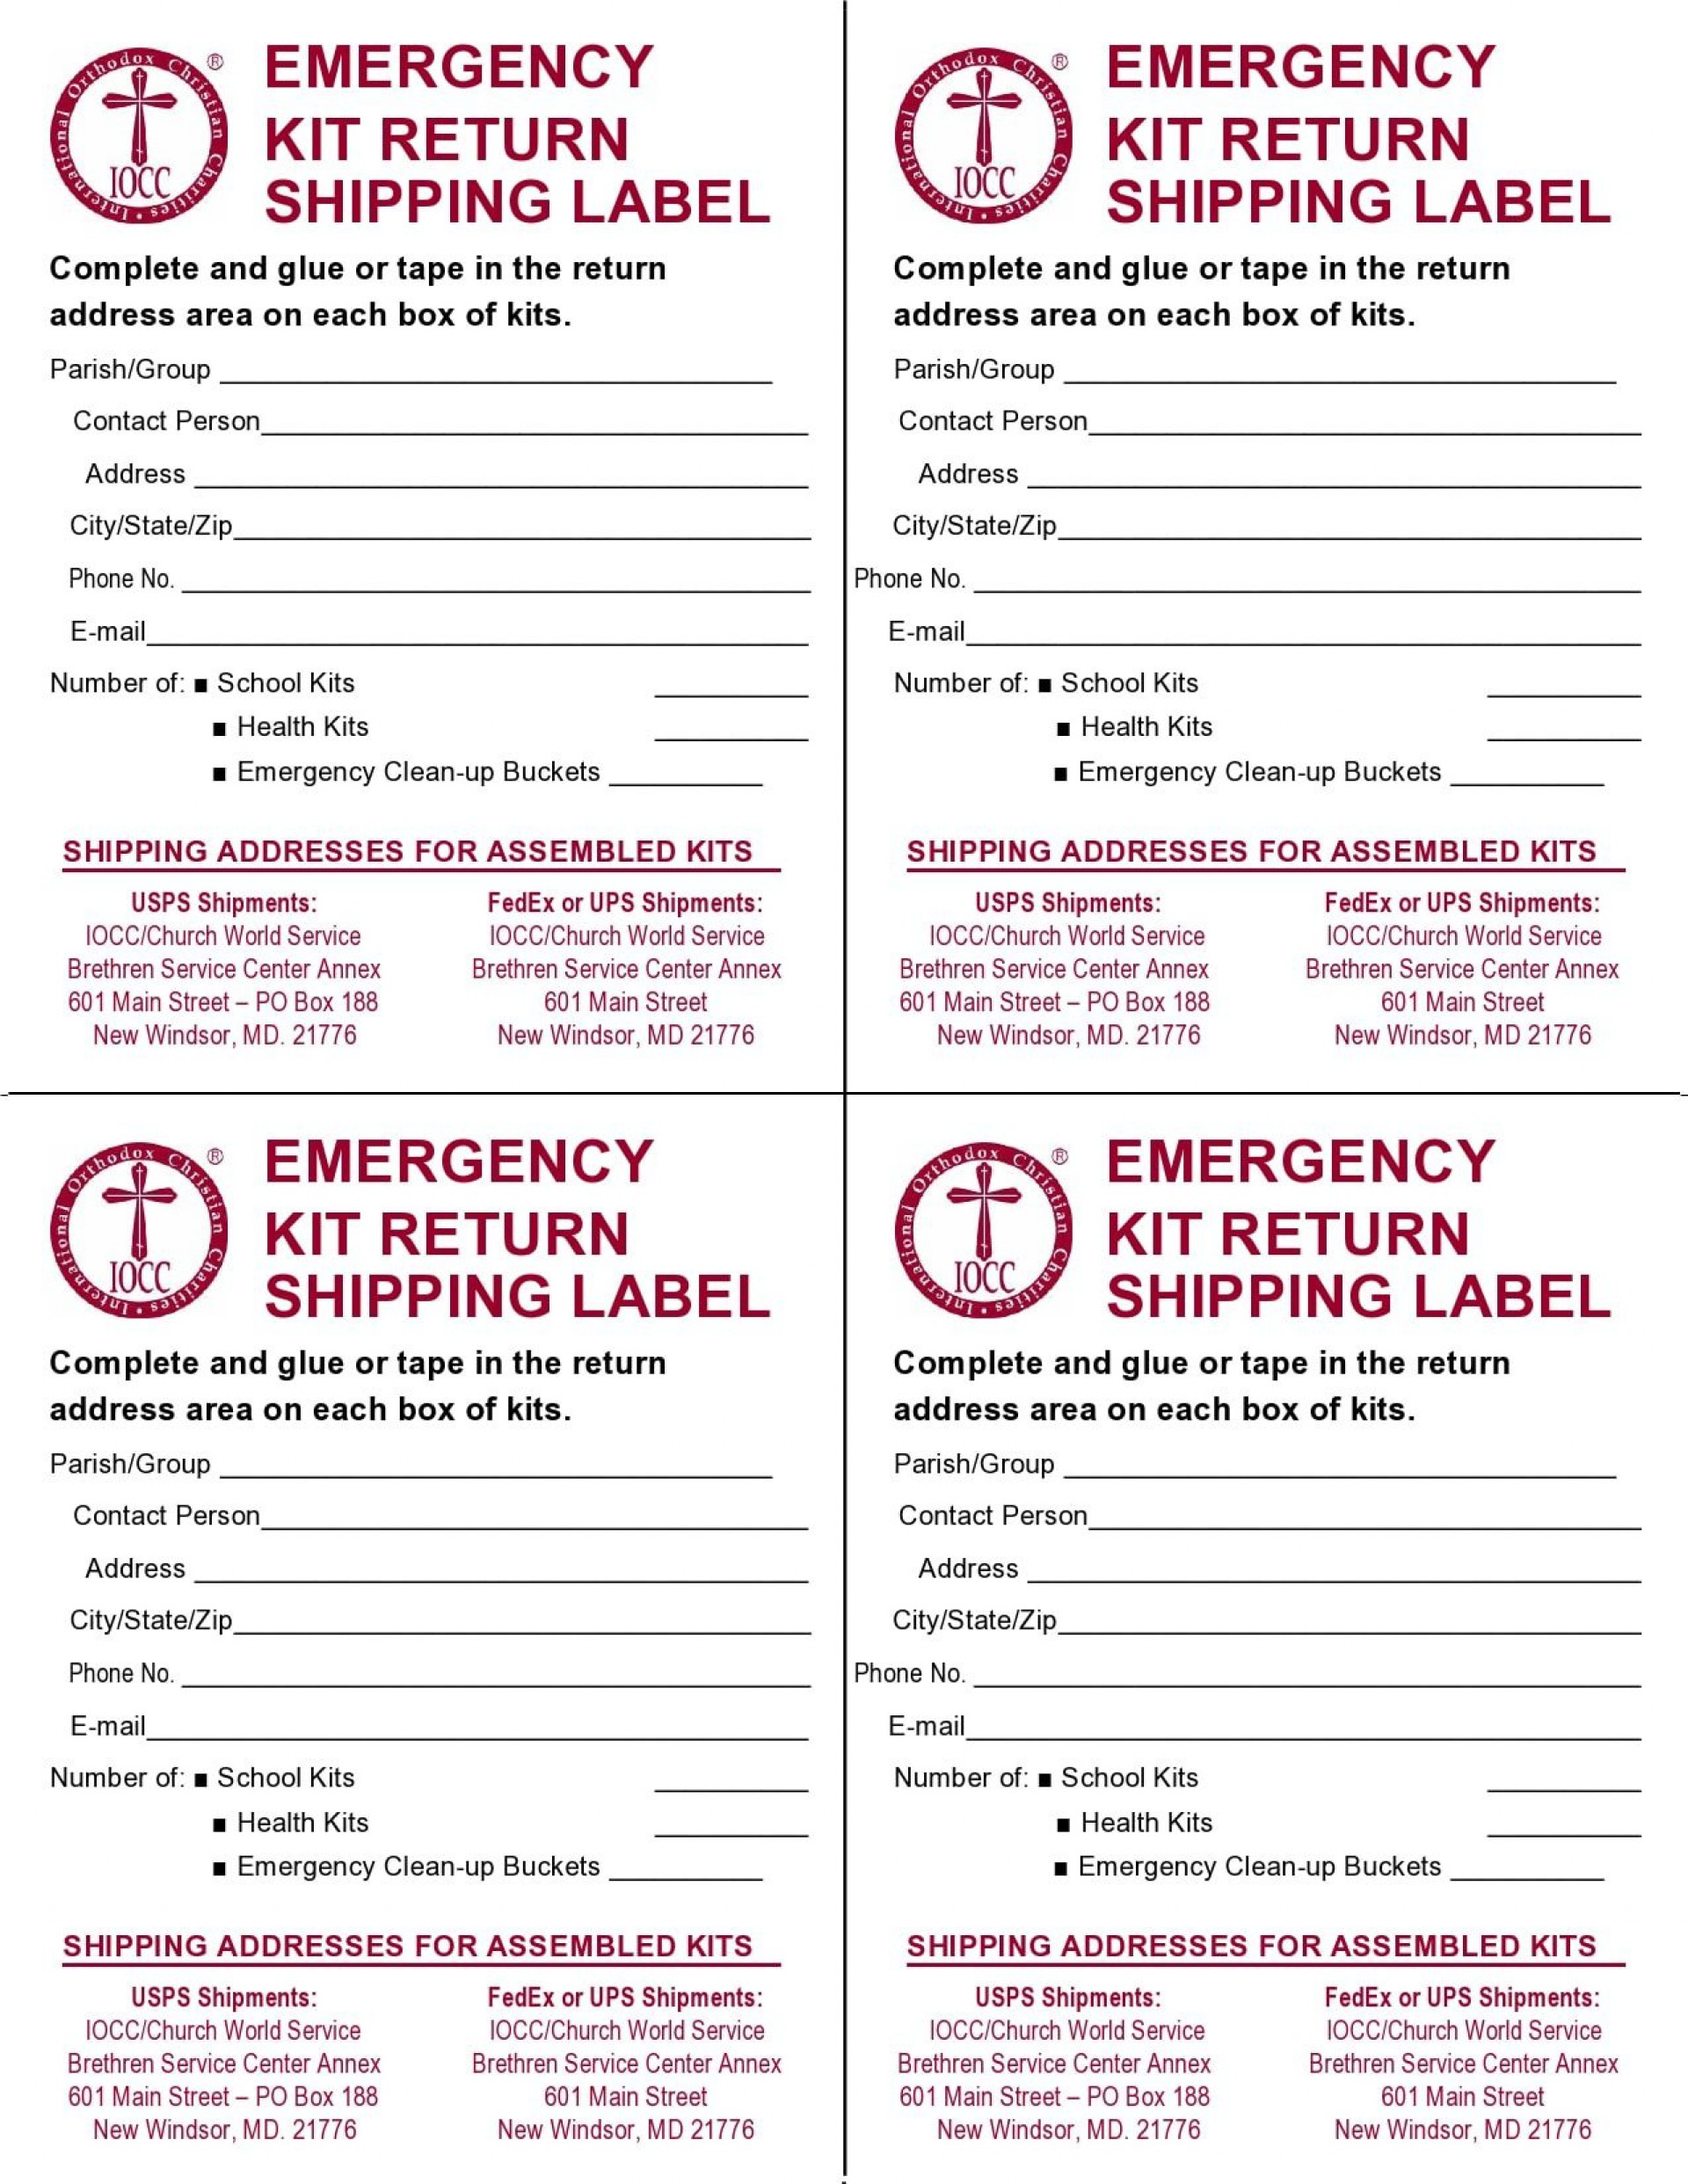 009 Impressive Shipping Label Template Free Word Picture 1920